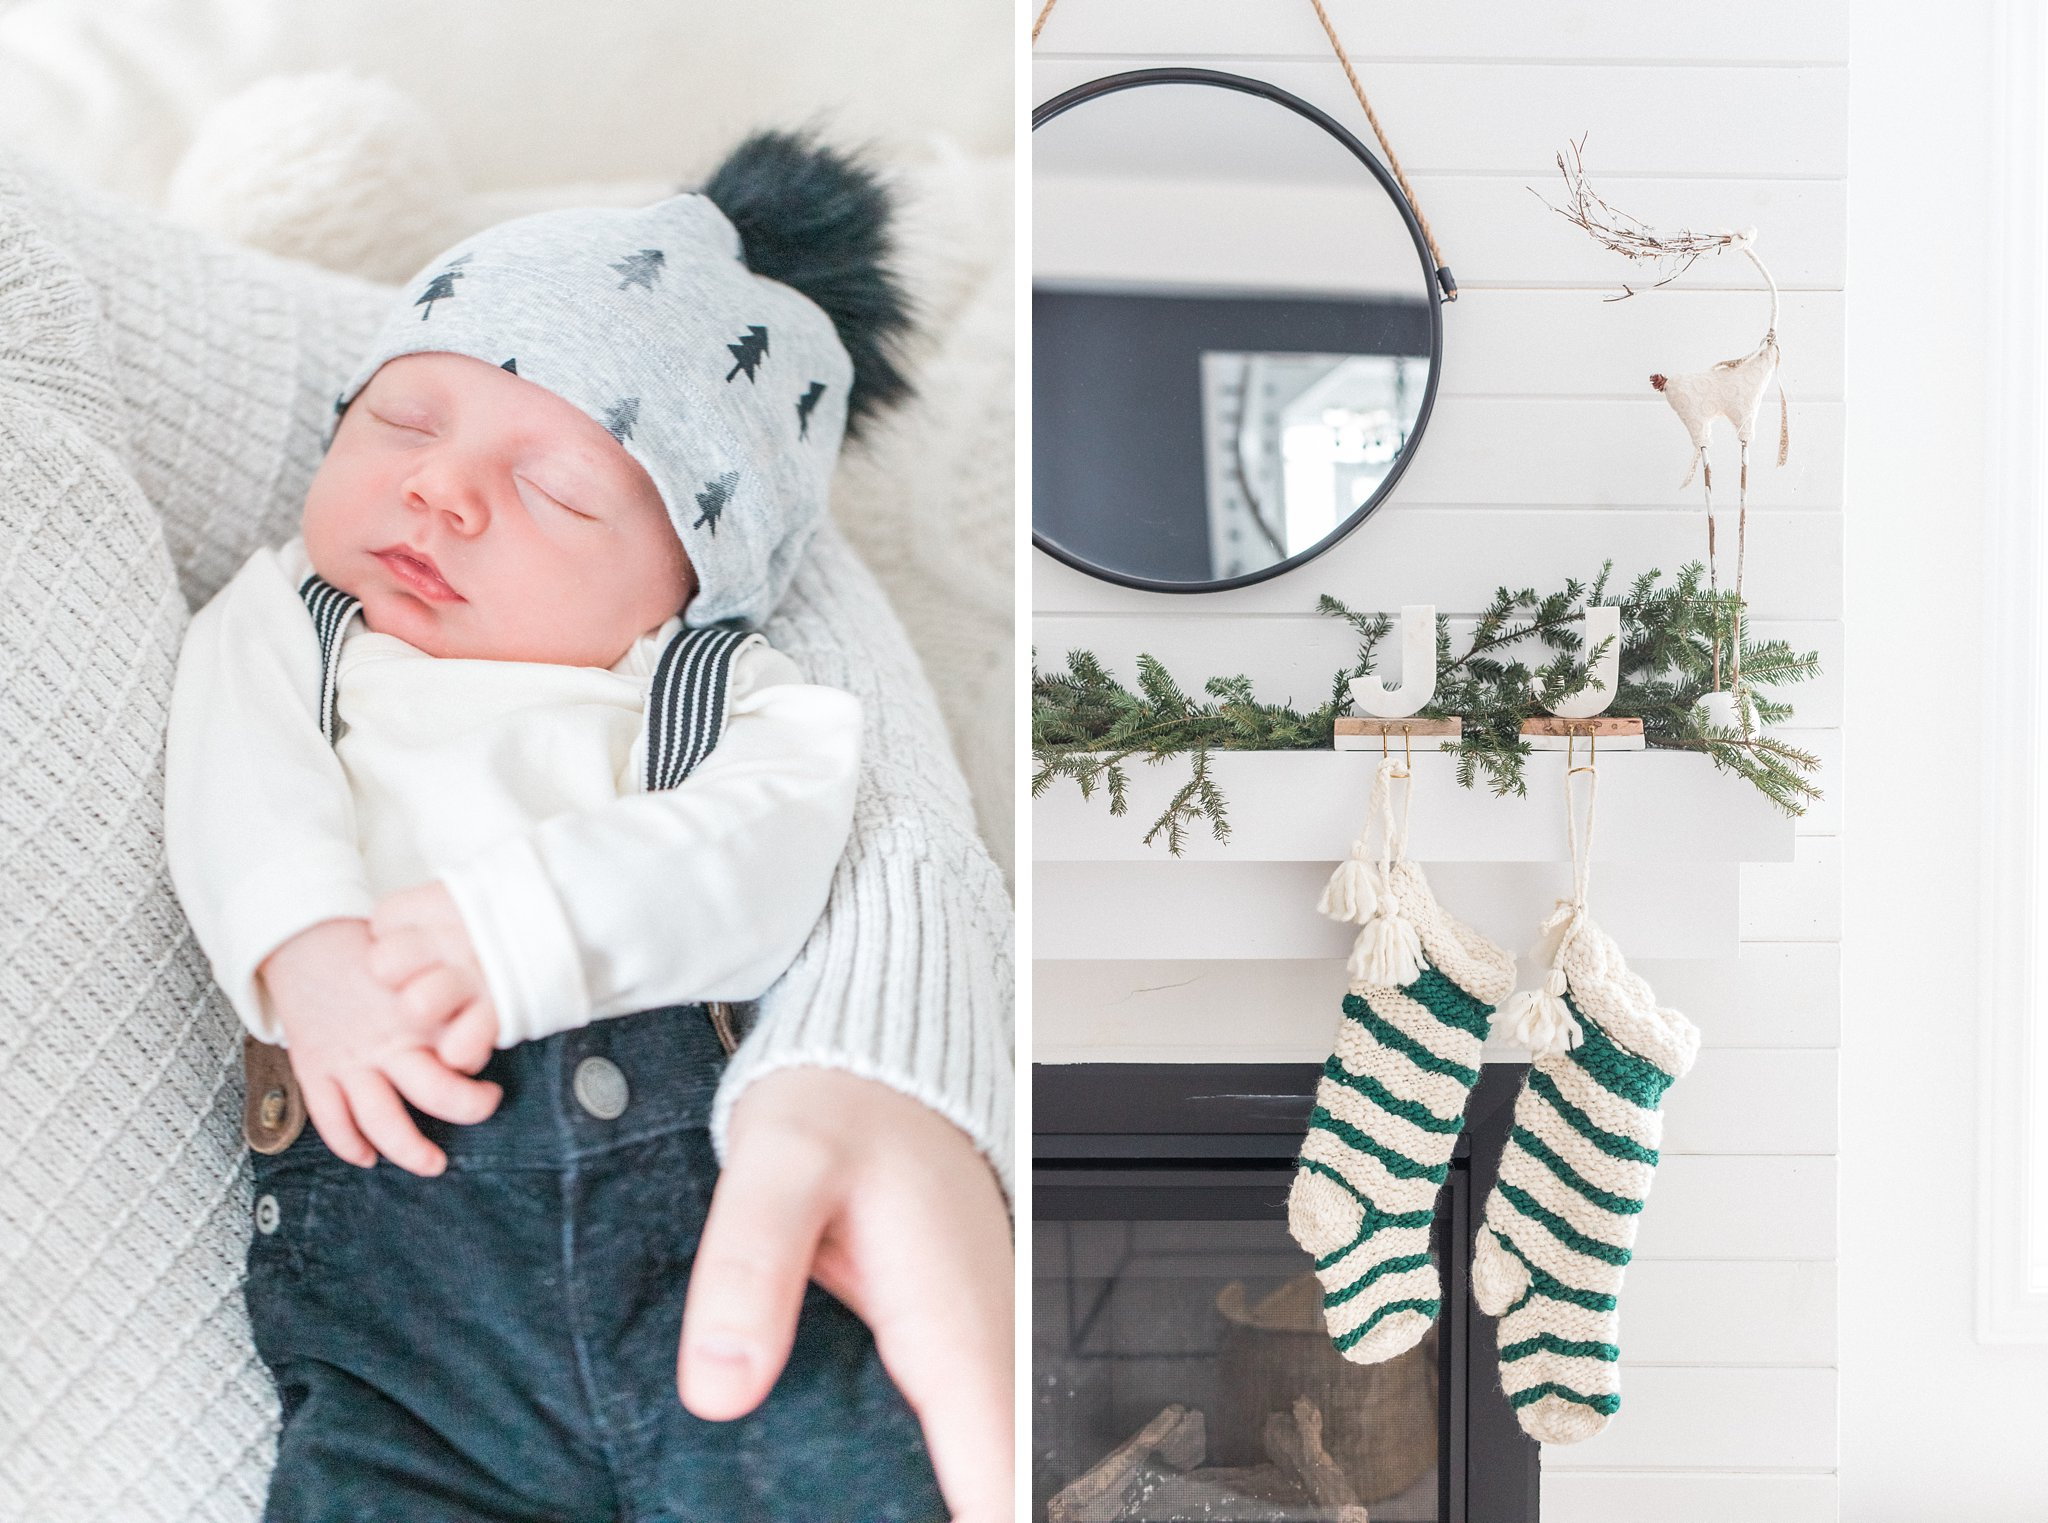 Newborn Lifestyle Photos During the Christmas Holidays